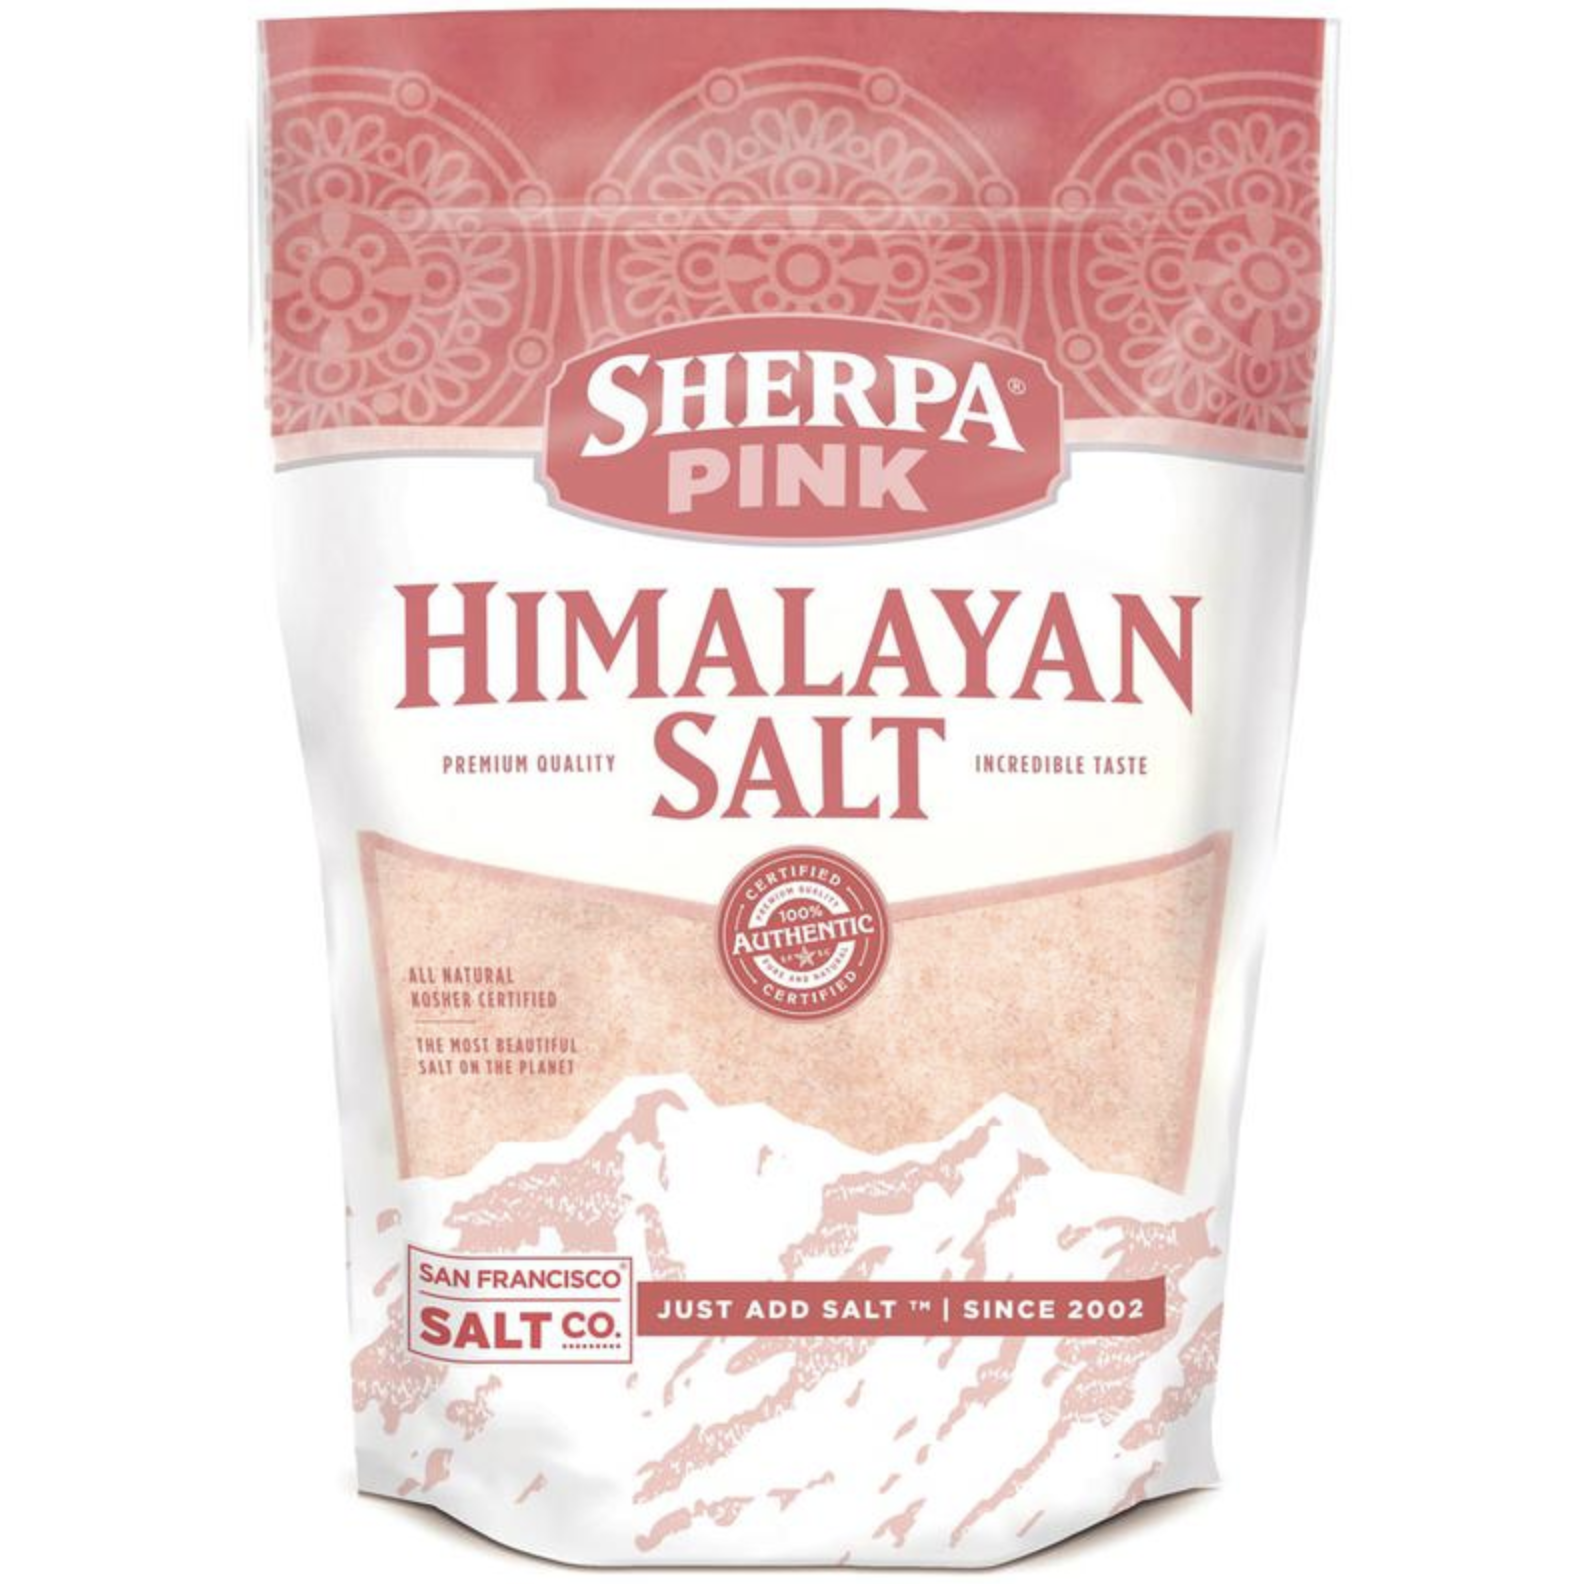 S.F. Salt Co. Himalayan Pink Salt